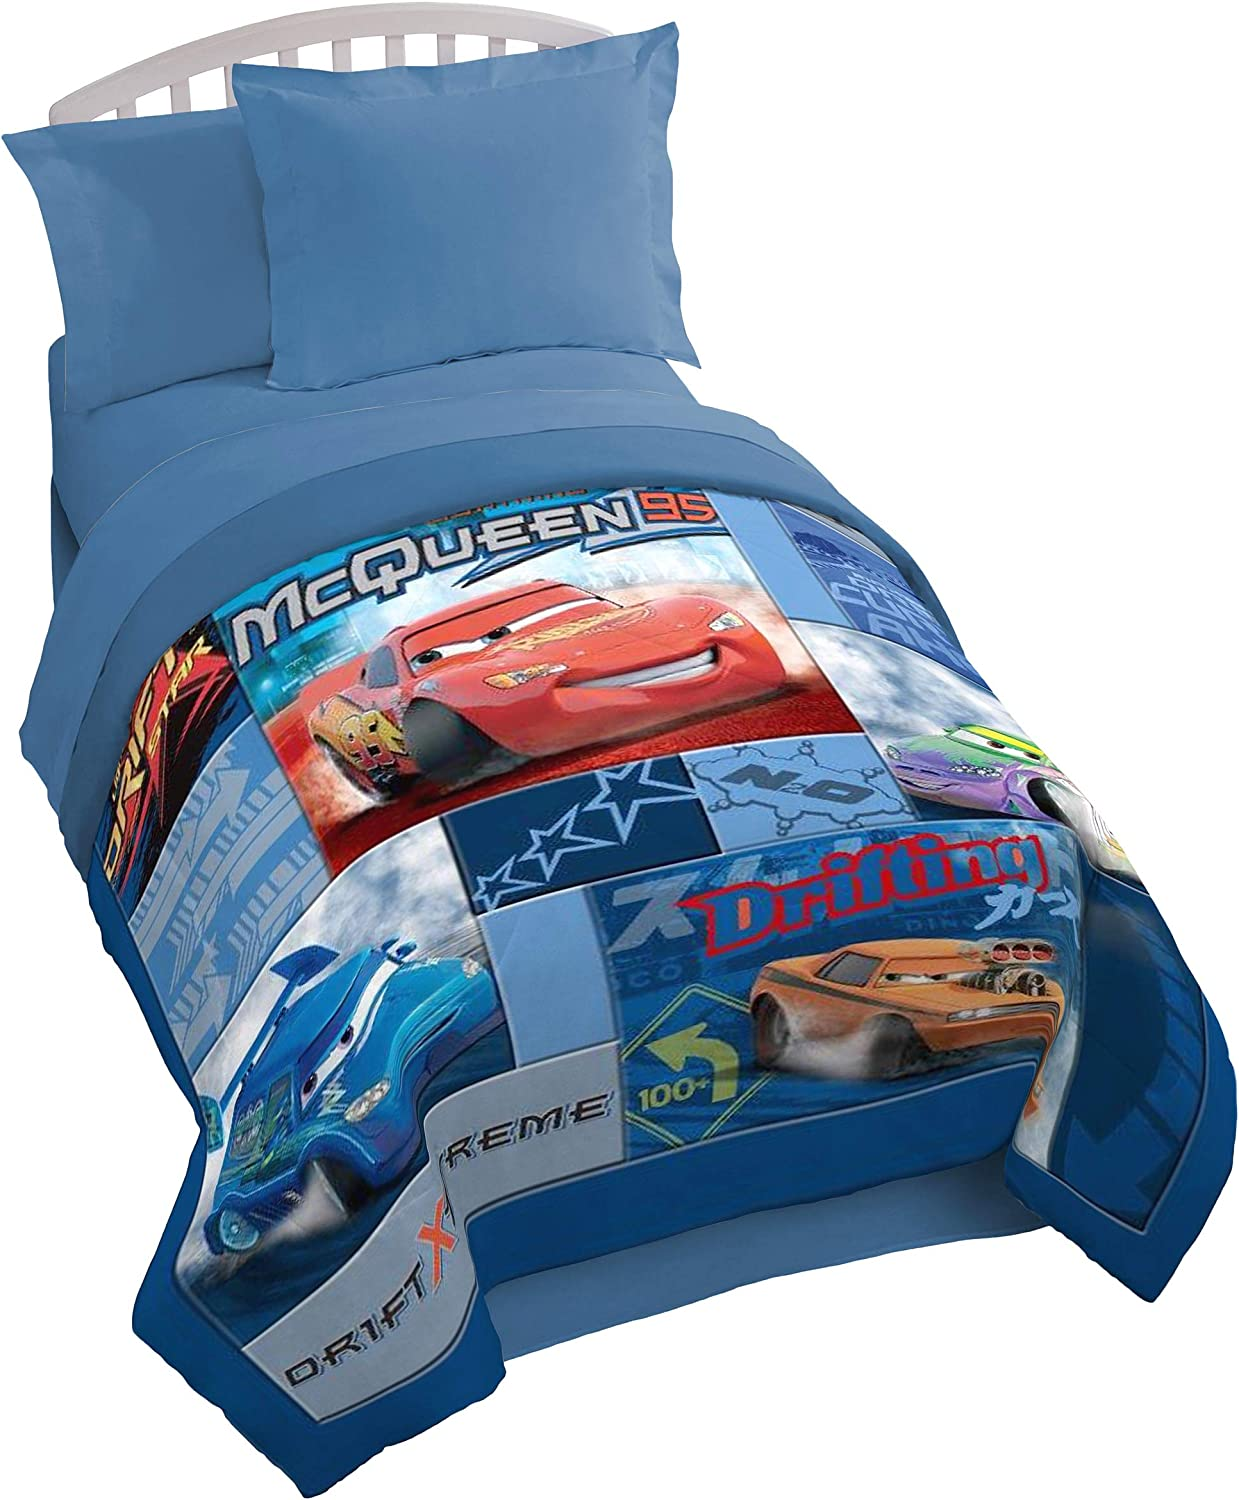 "Disney/Pixar Cars Drift Blue/Red Plush 72"" x 86"" Twin/Full Quilt with Lightning McQueen, Snot Rod, Wingo & DJ (Official Disney/Pixar Product)"